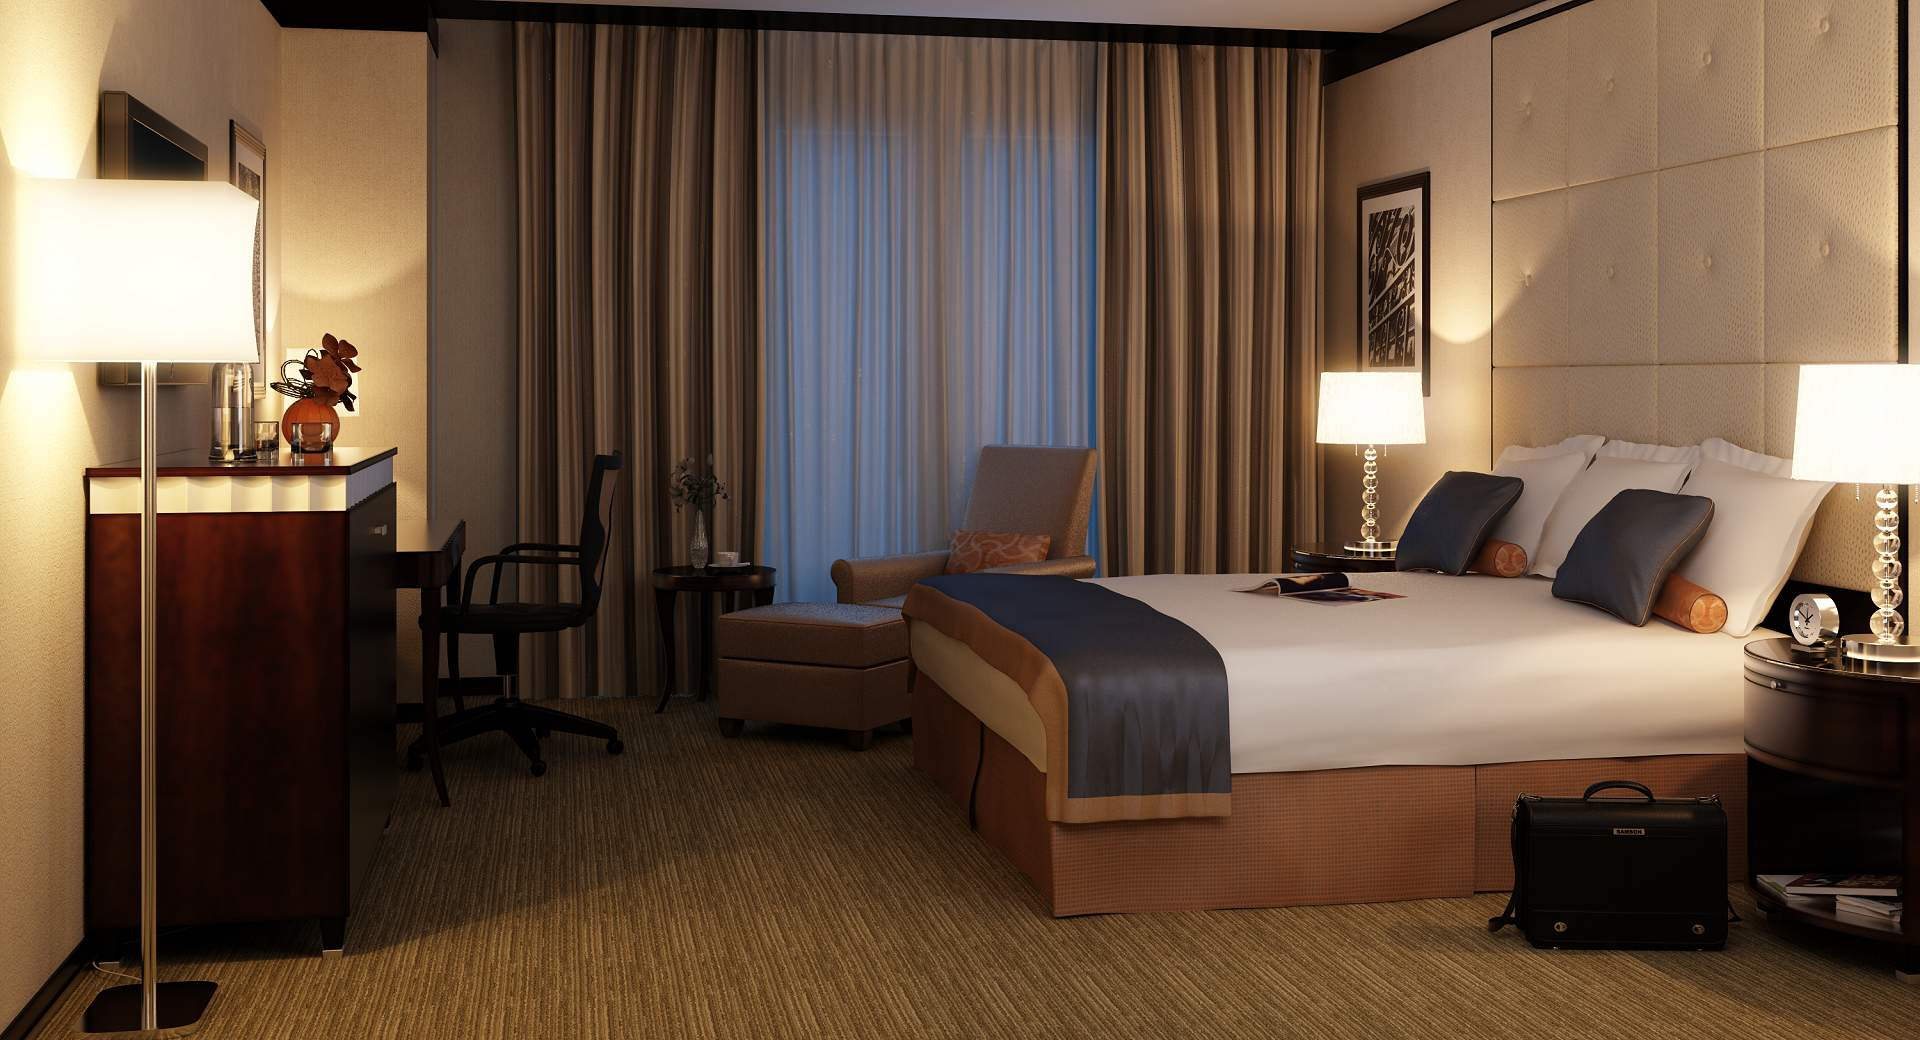 cottonsafe hotel and contract natural mattresses